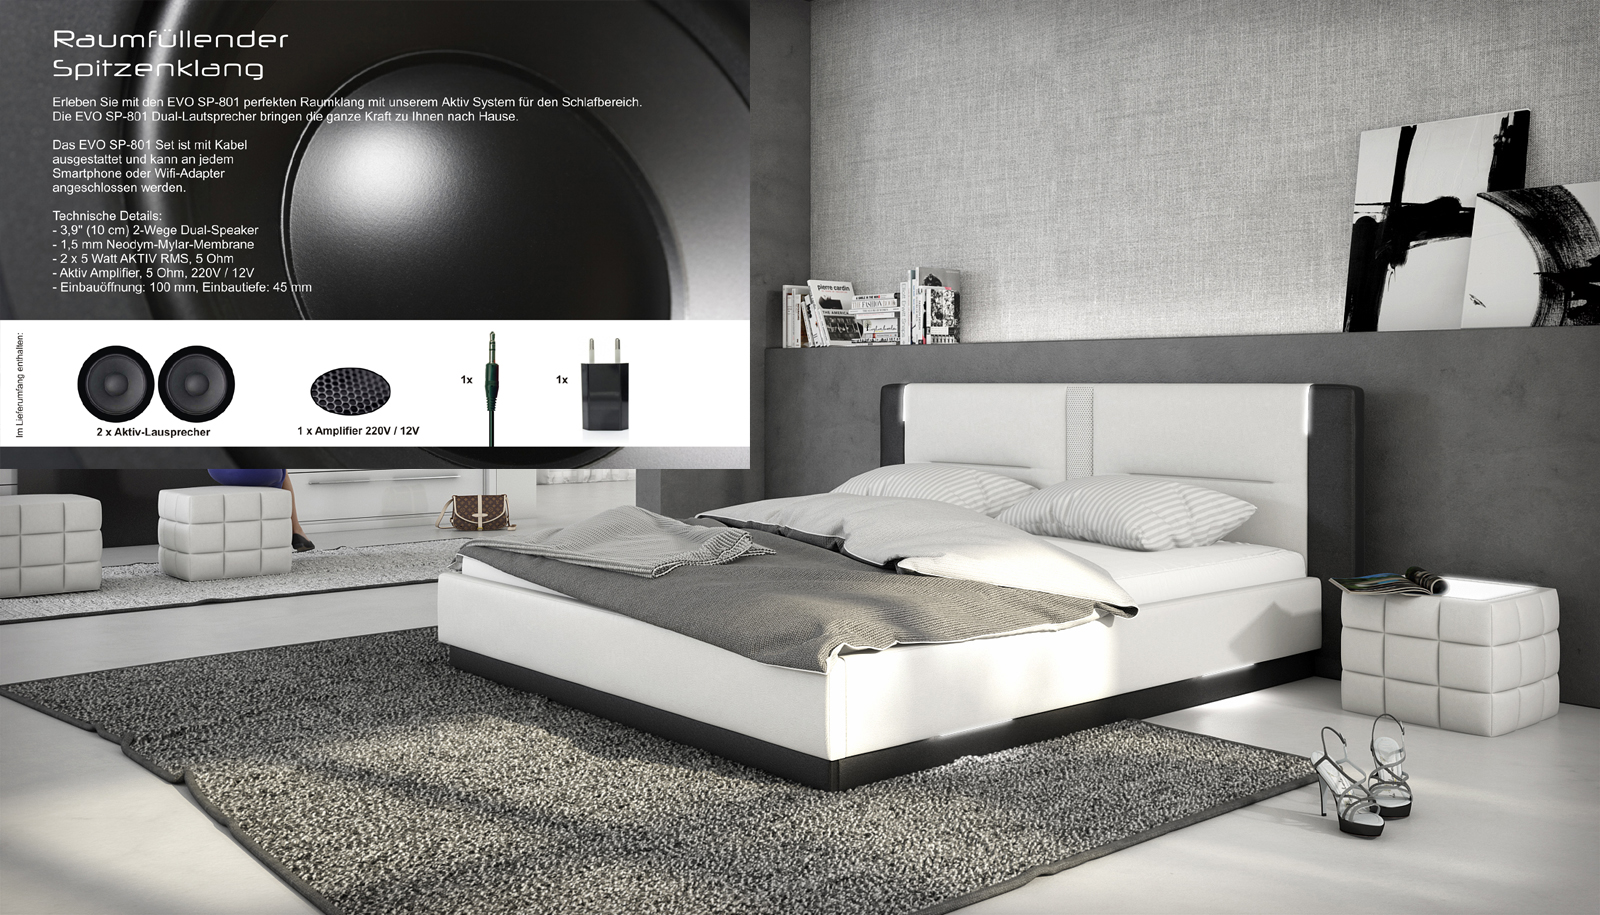 bett santiago 140 x 200 cm wei schwarz mit soundsystem. Black Bedroom Furniture Sets. Home Design Ideas